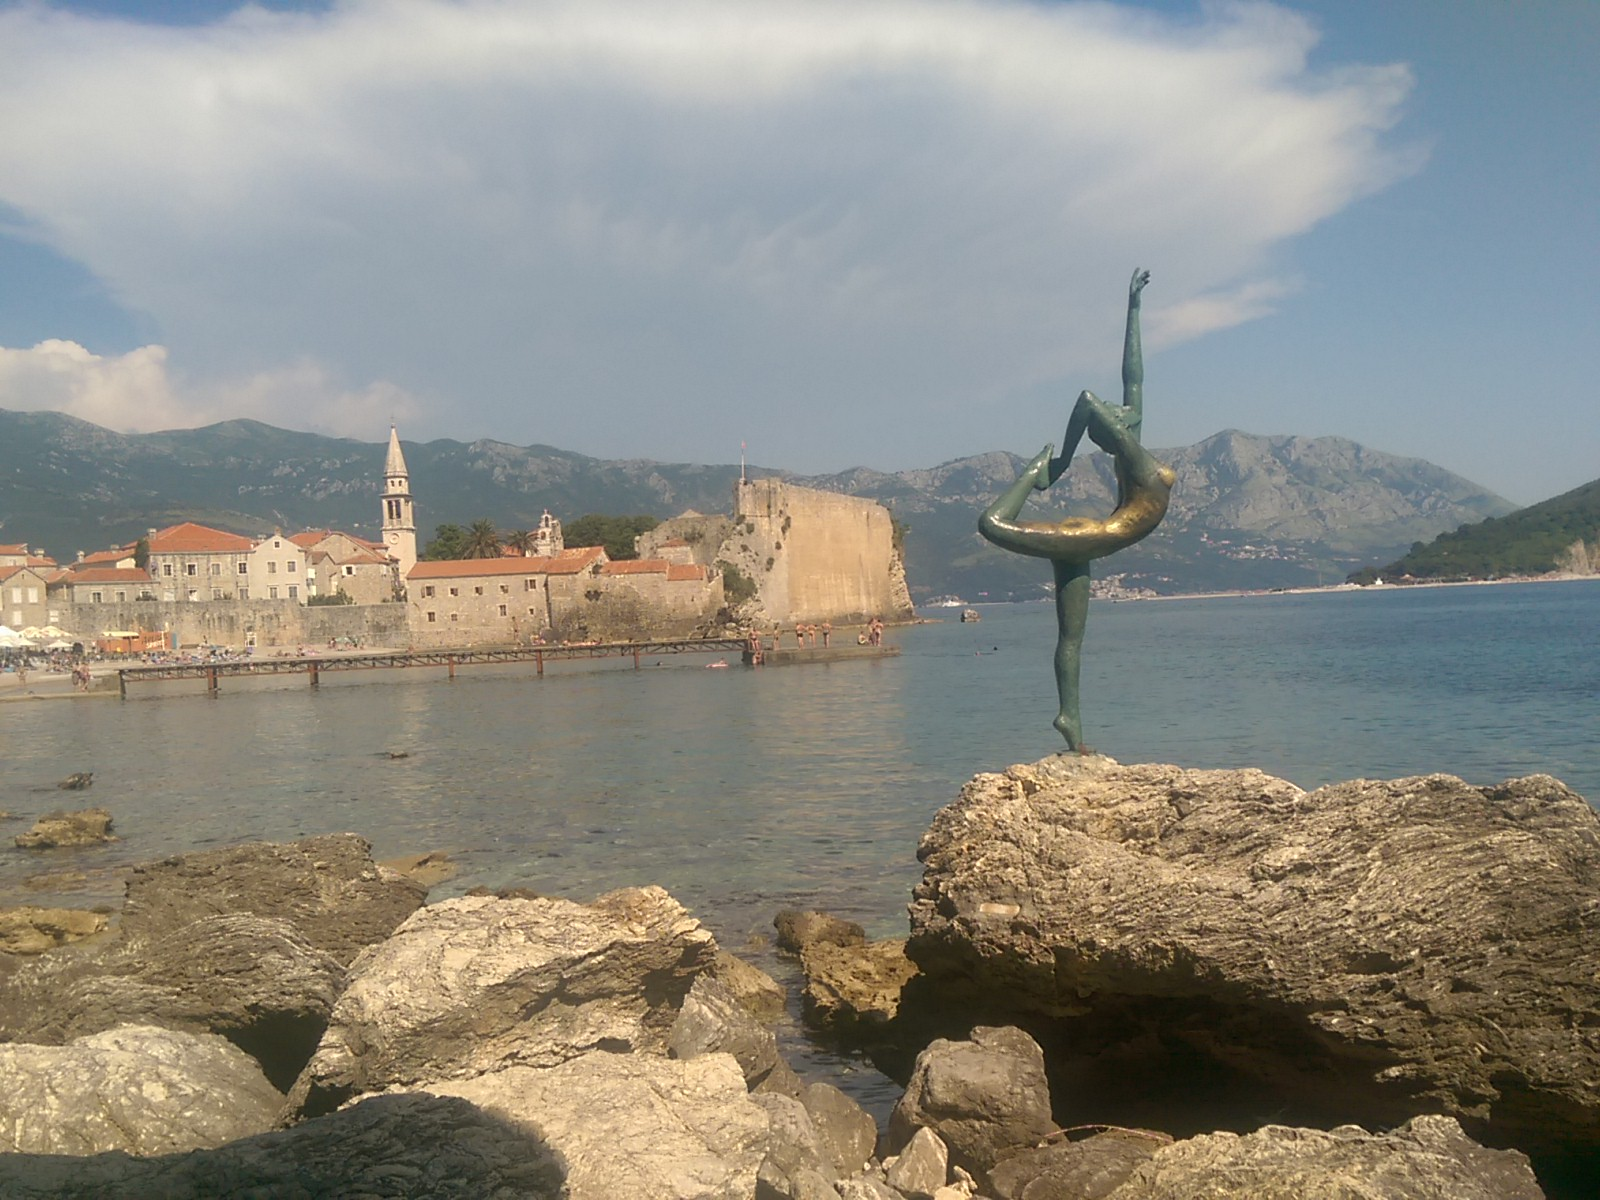 A green and gold statue of a woman doing the dancer pose on a rock, with distant mountans and a stone old town with city walls and churches in the background